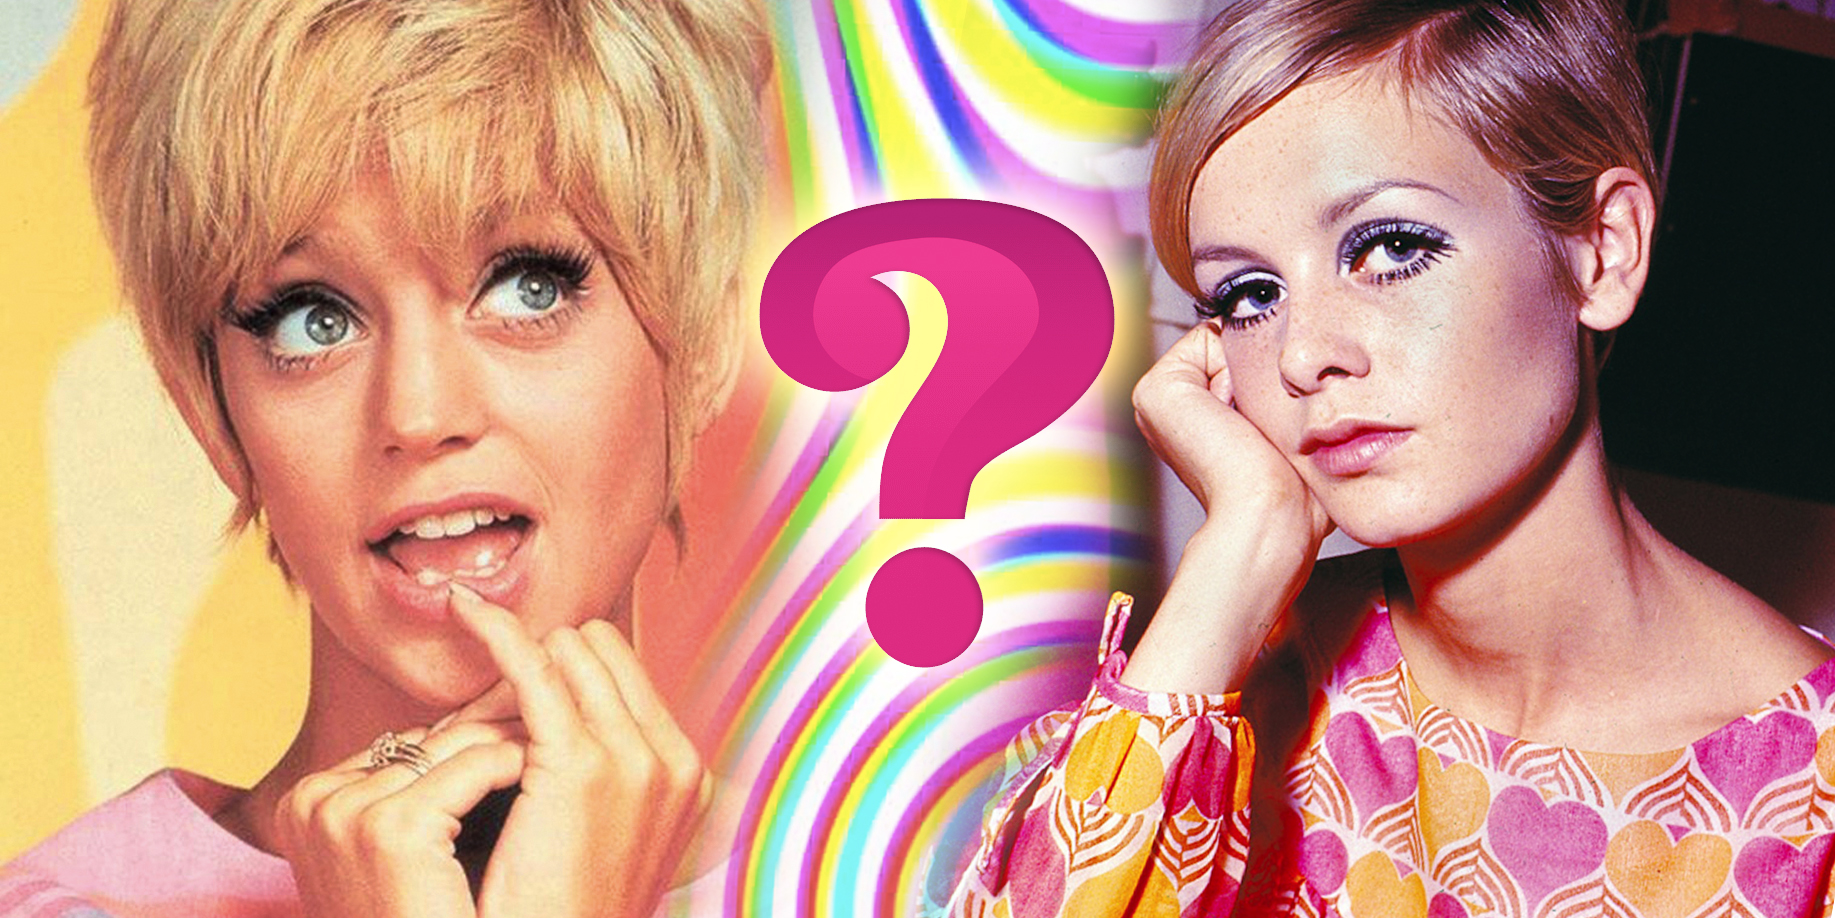 Quiz-No-One-Can-Name-Every-Single-One-Of-These-60s-Icons